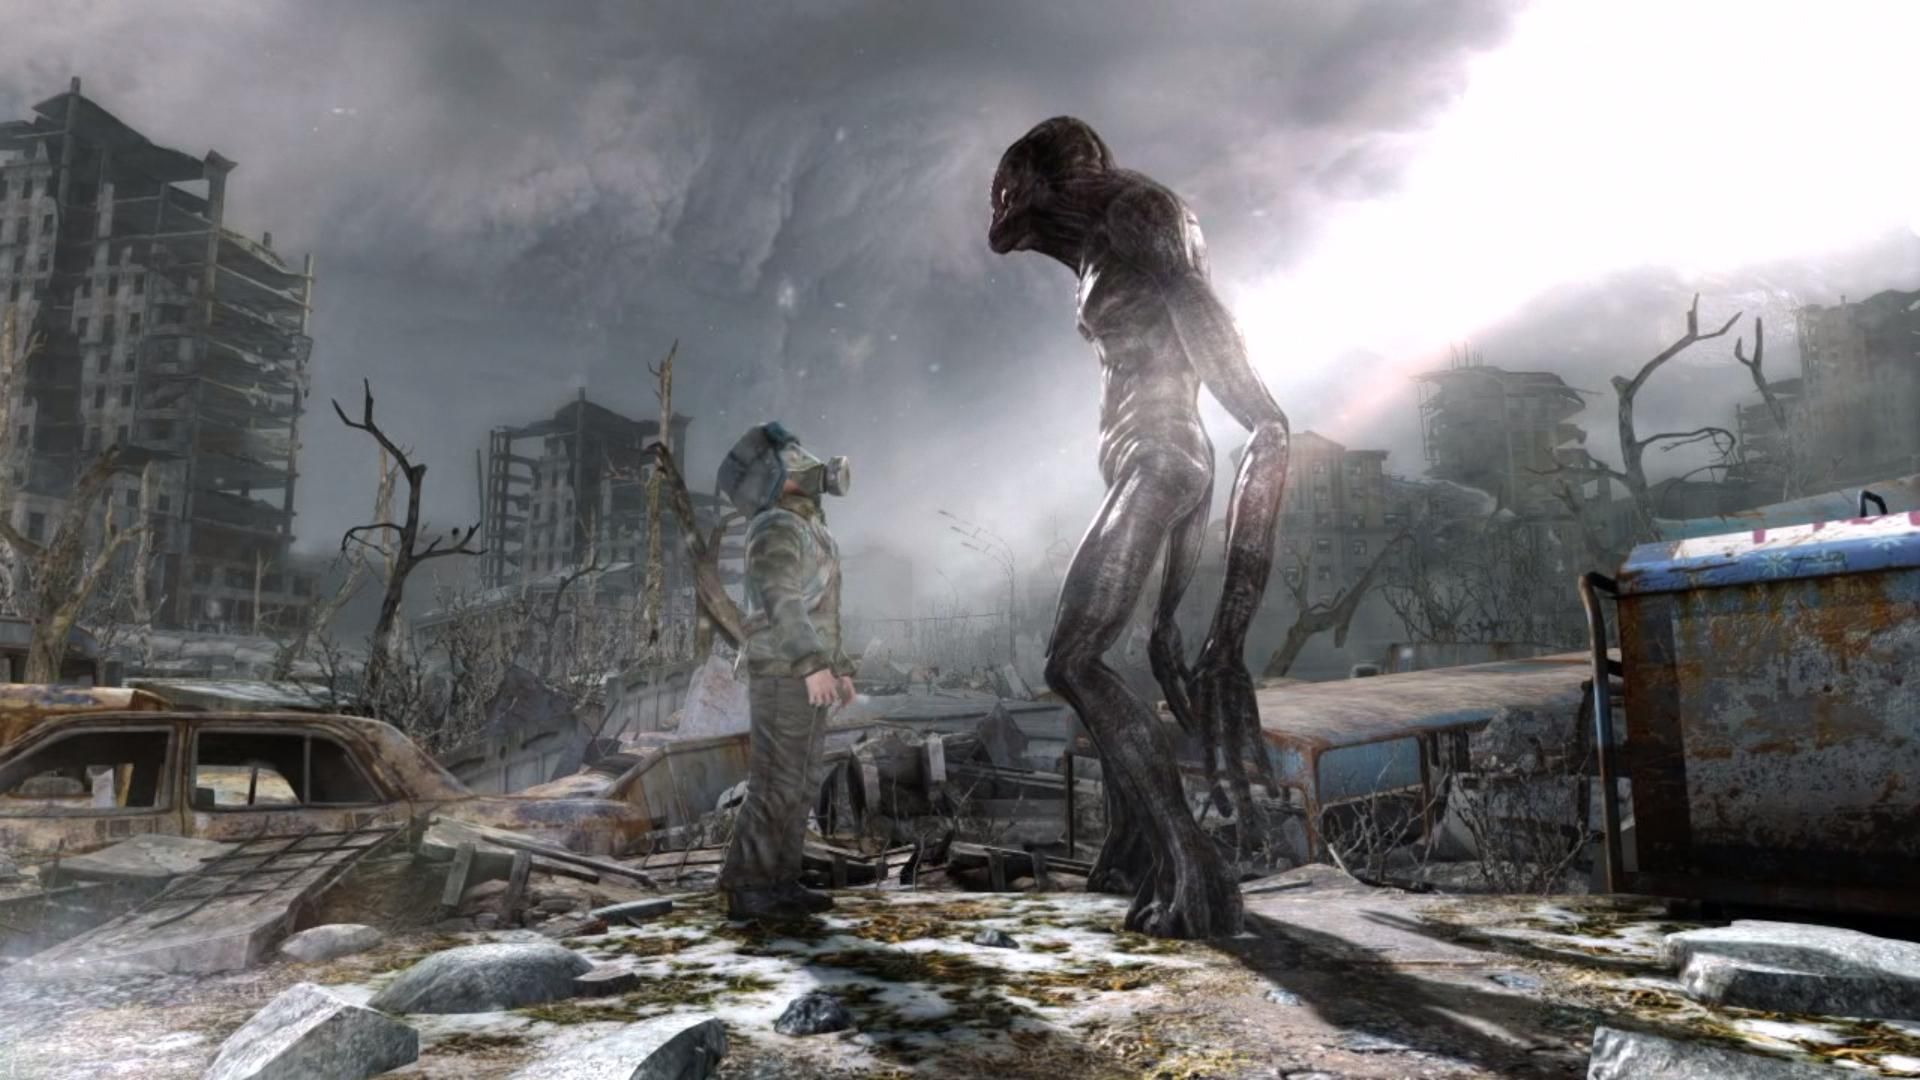 Wallpapers Fond Decran Pour Metro Last Light PC PS3 Xbox 360 Mac WiiU PS4 One